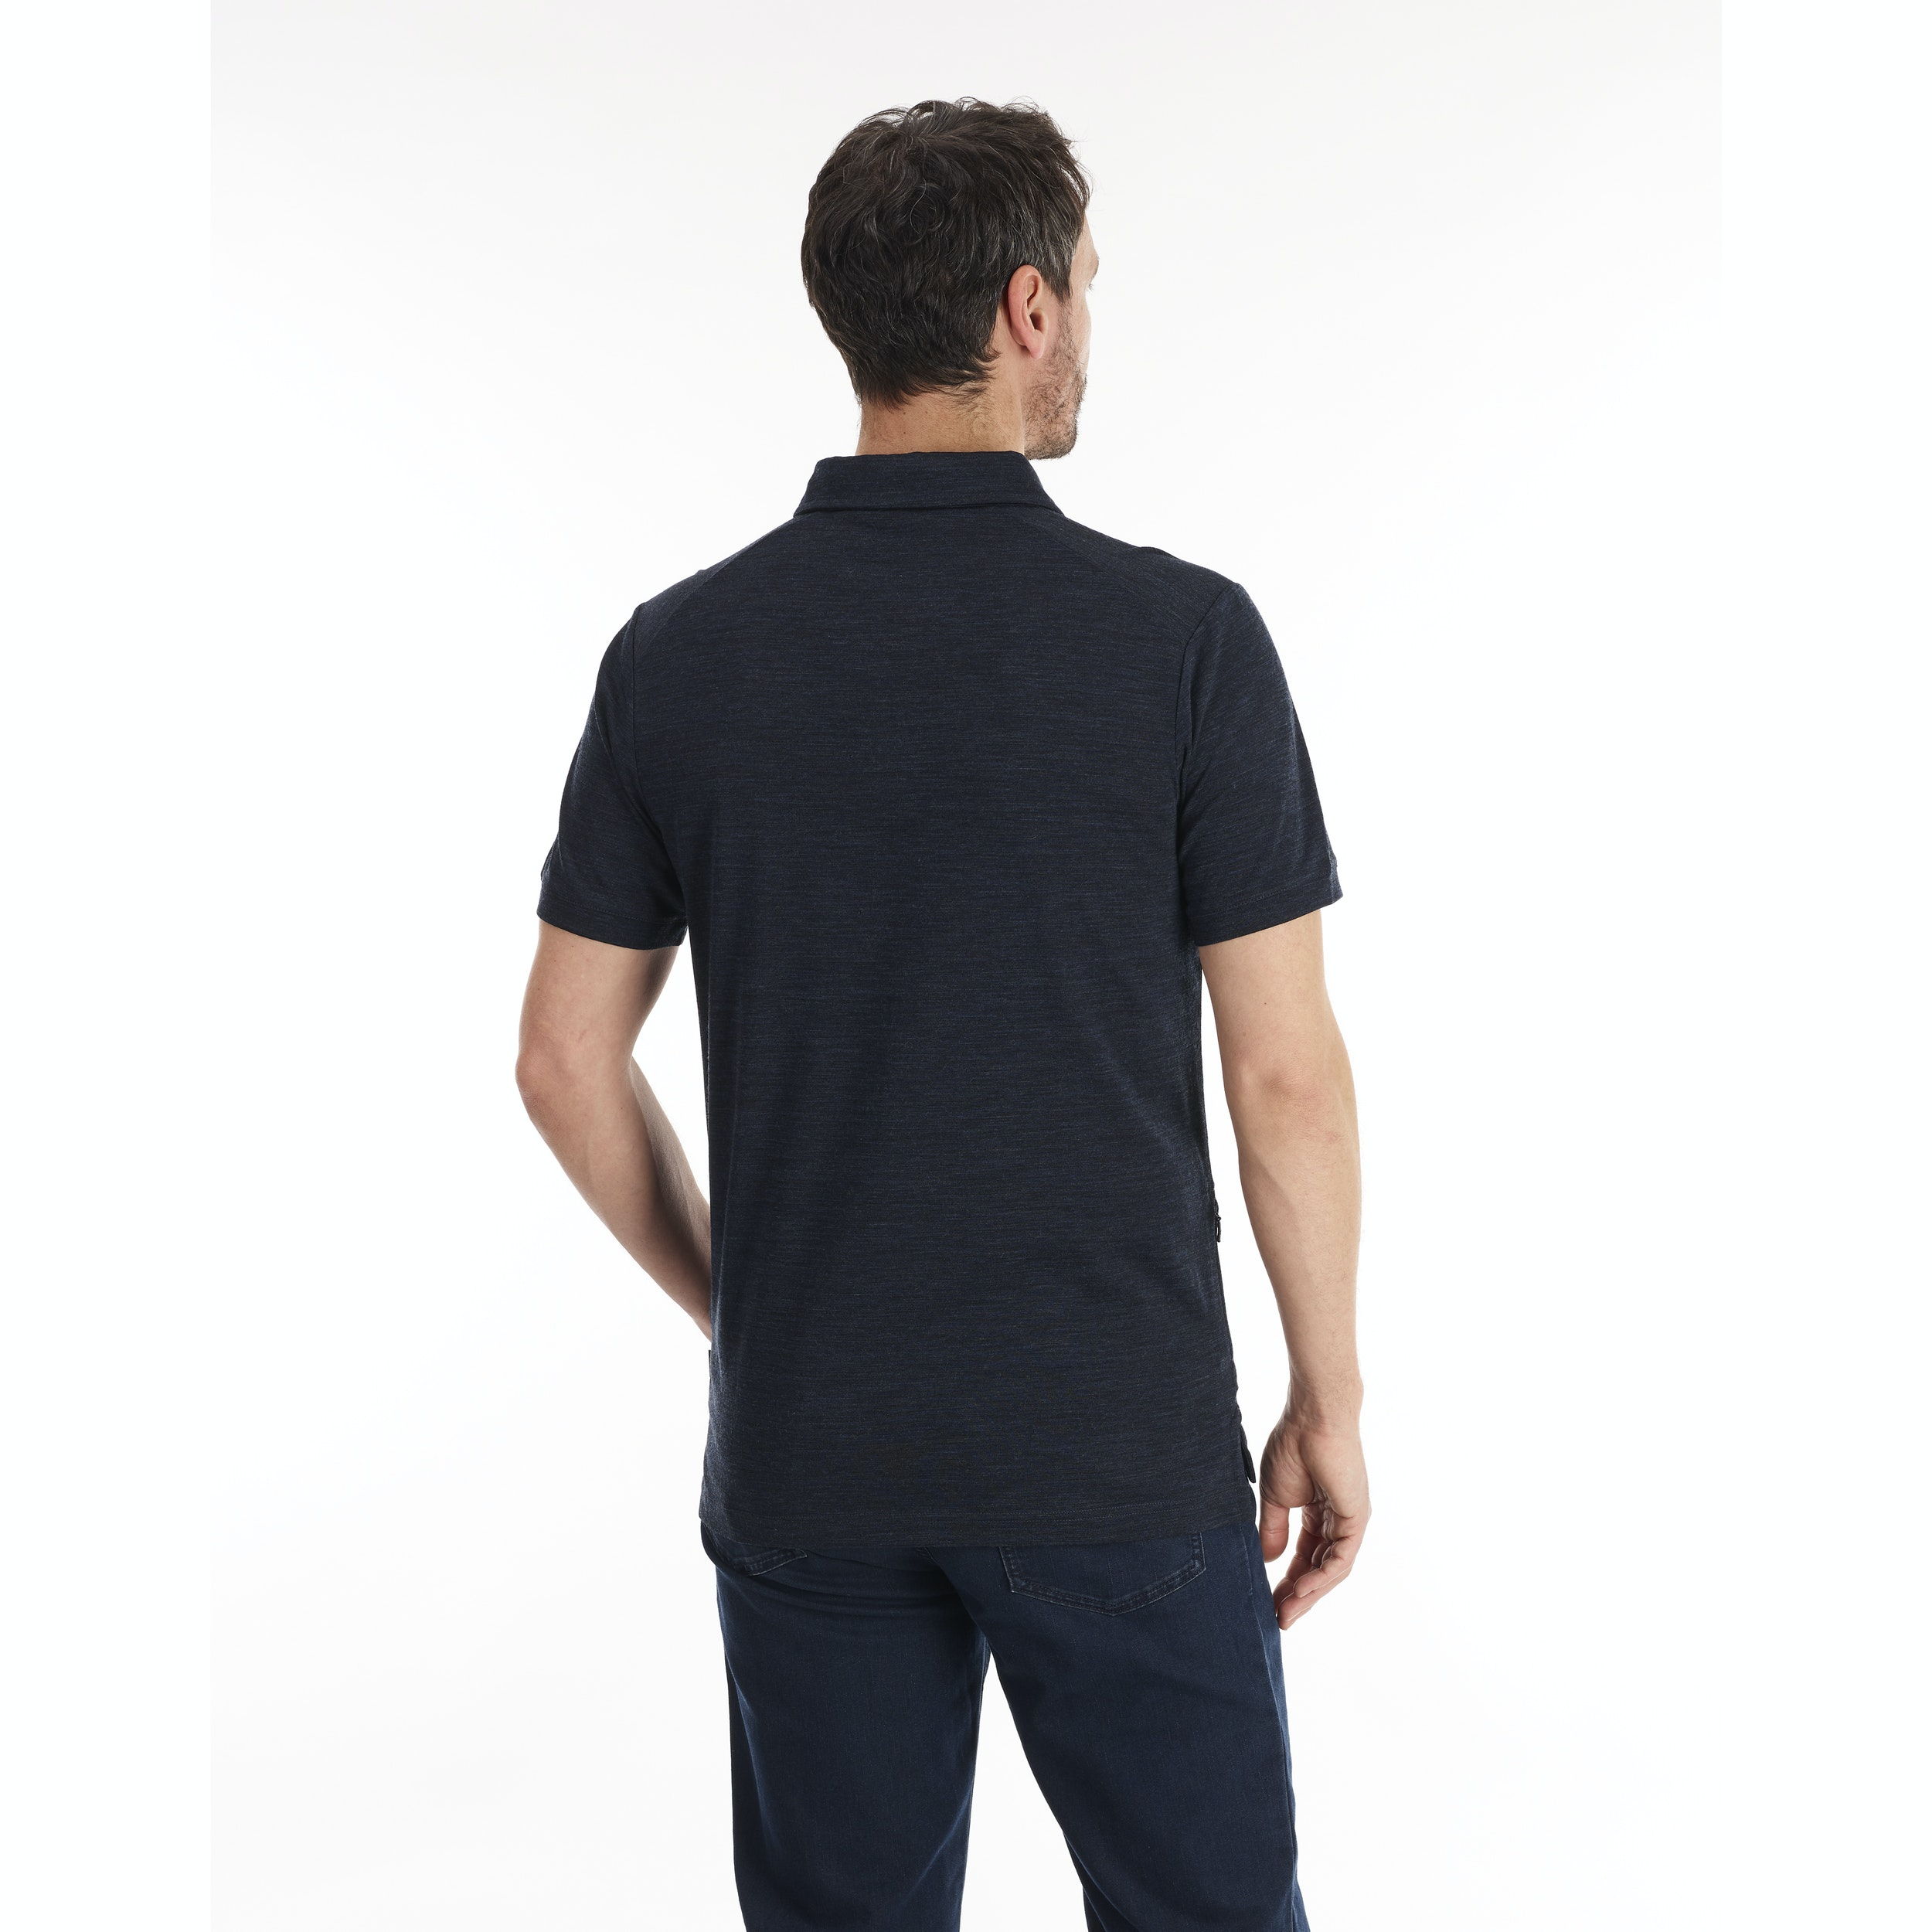 7832e35b Men's Merino Union 150 Polo - Smart, technical, merino-blend polo.